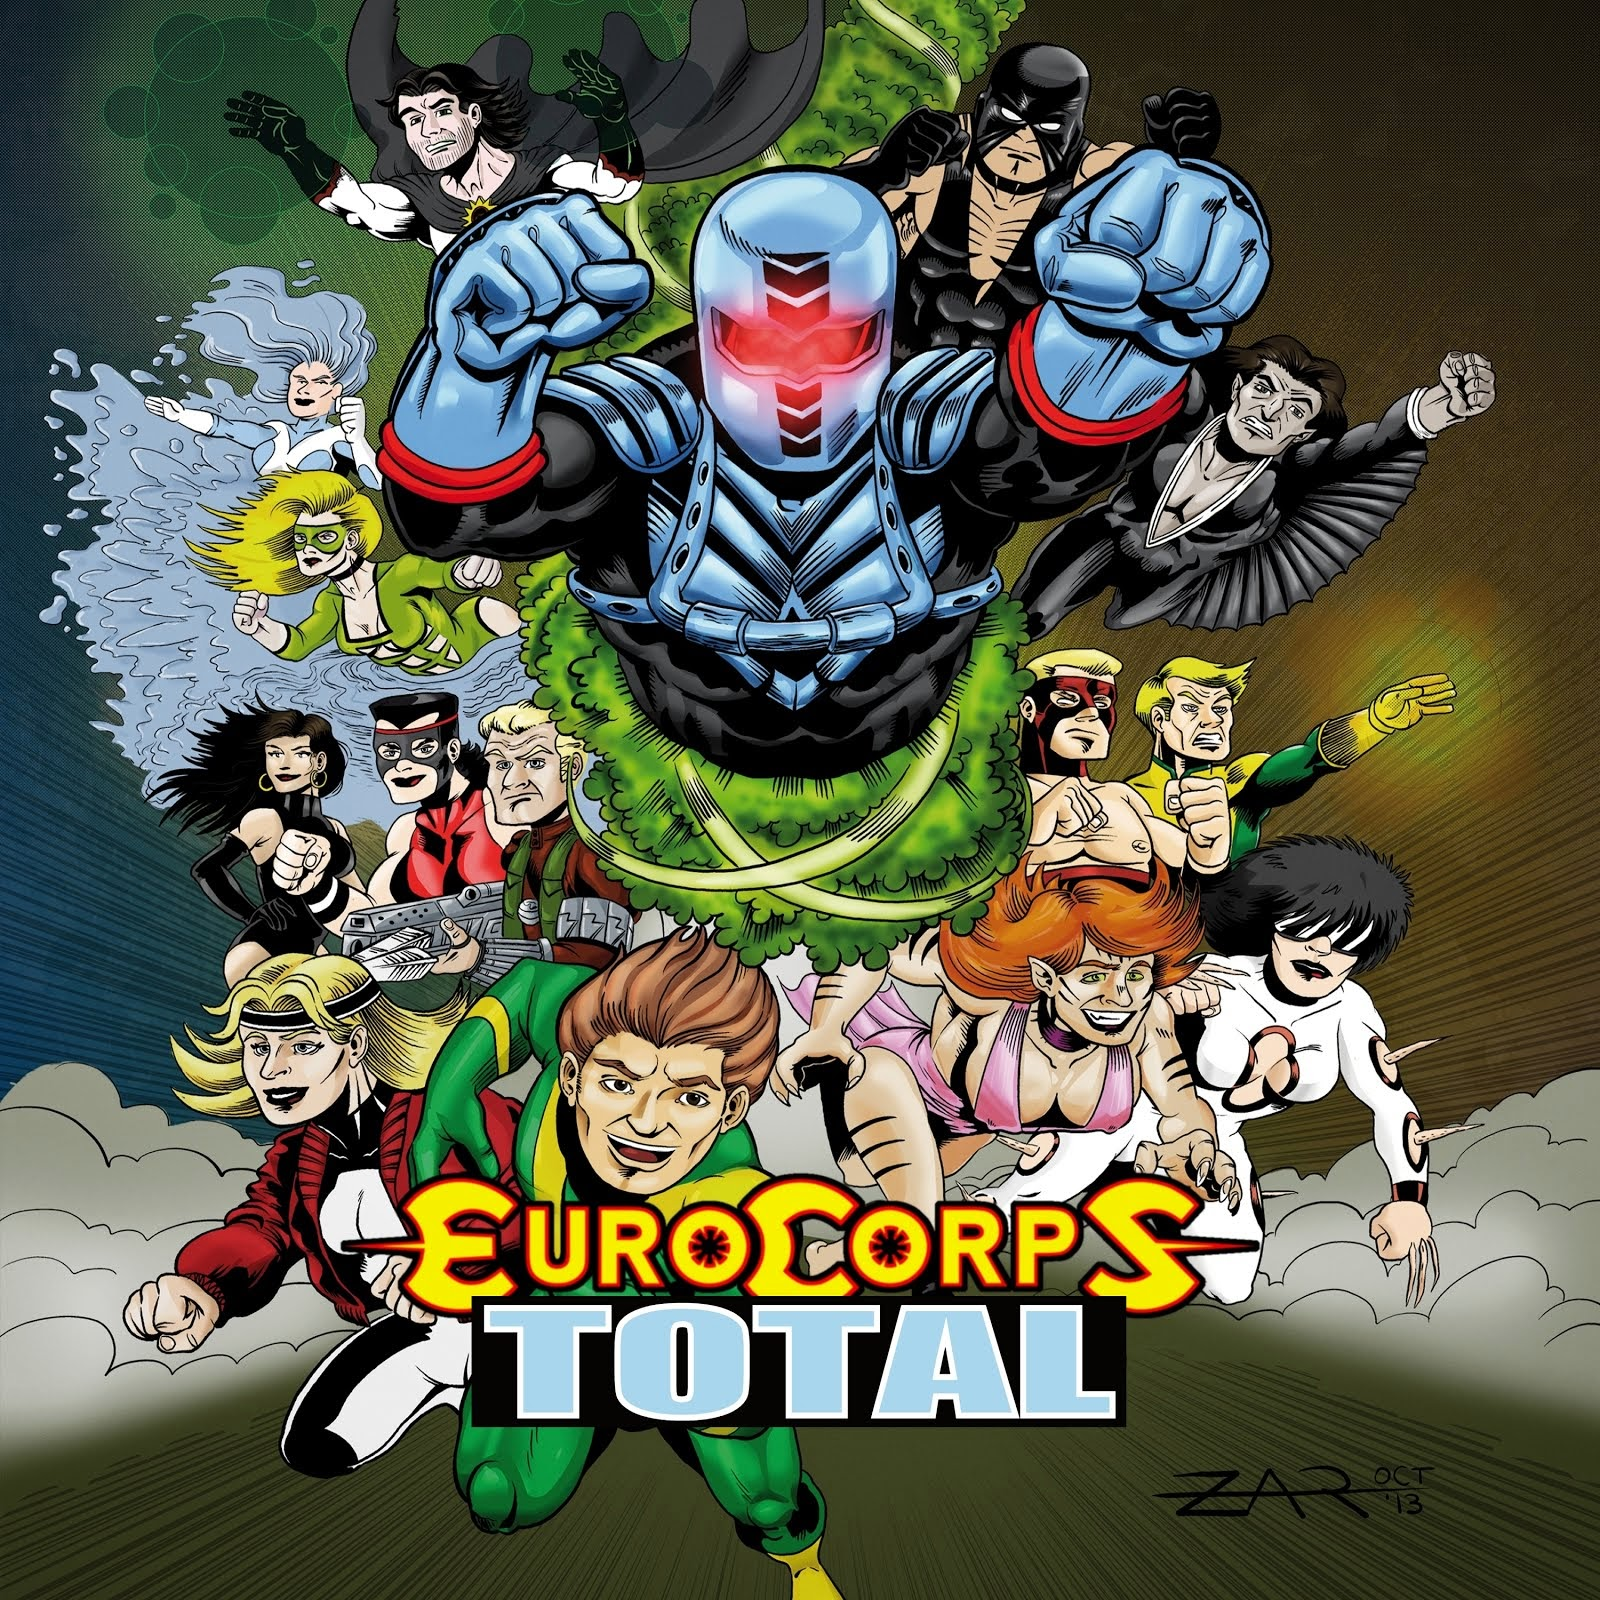 Eurocorps Total